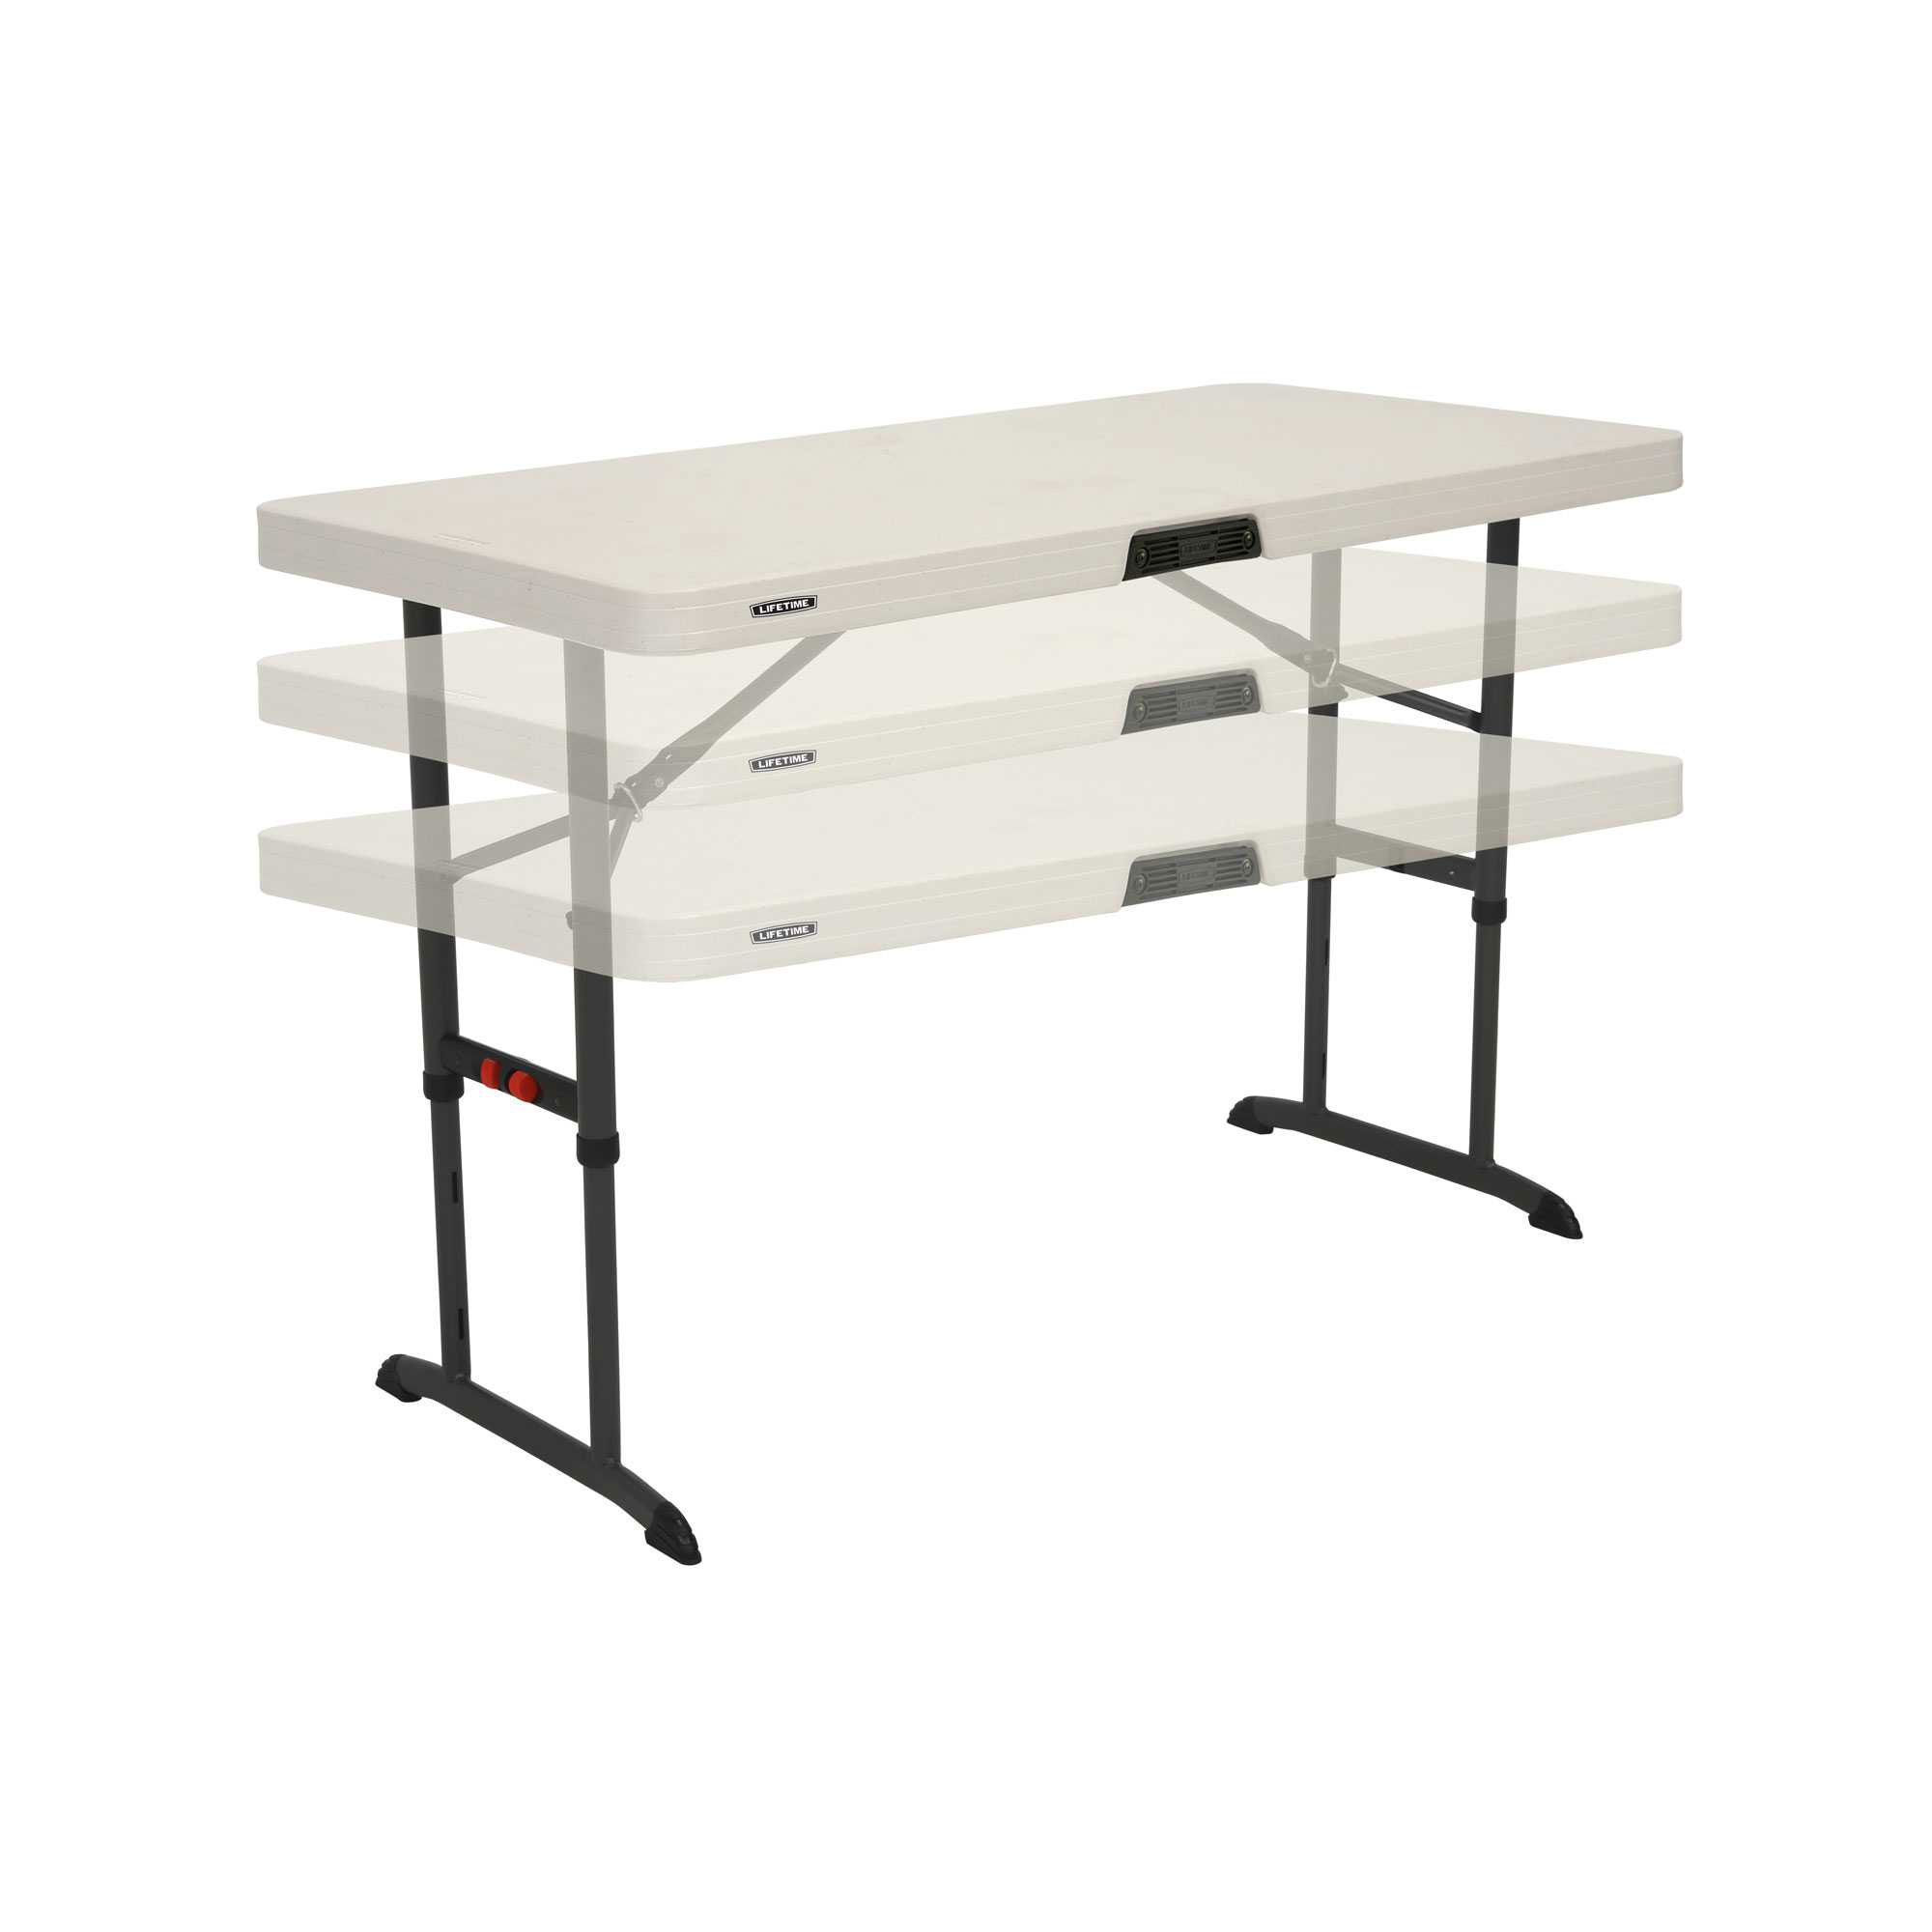 4 Foot Commercial Adjustable Folding Table Almond Lifetime 80387 80370